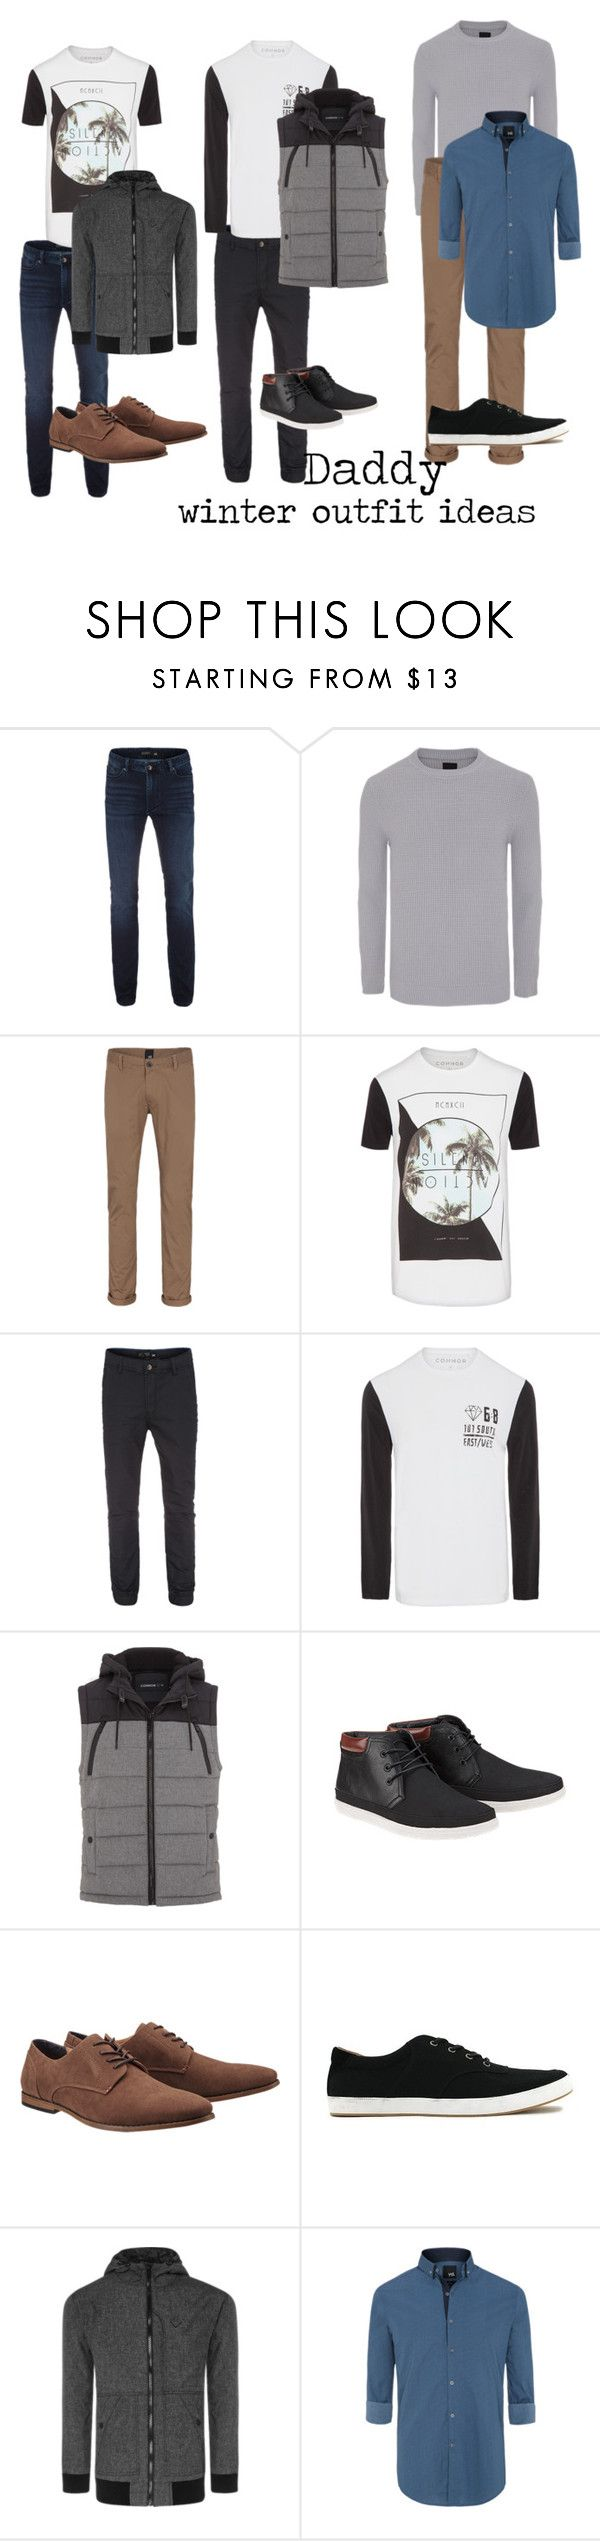 """""""DADDY - Winter Outfit Ideas"""" by mrsandmummy on Polyvore featuring men's fashion and menswear"""